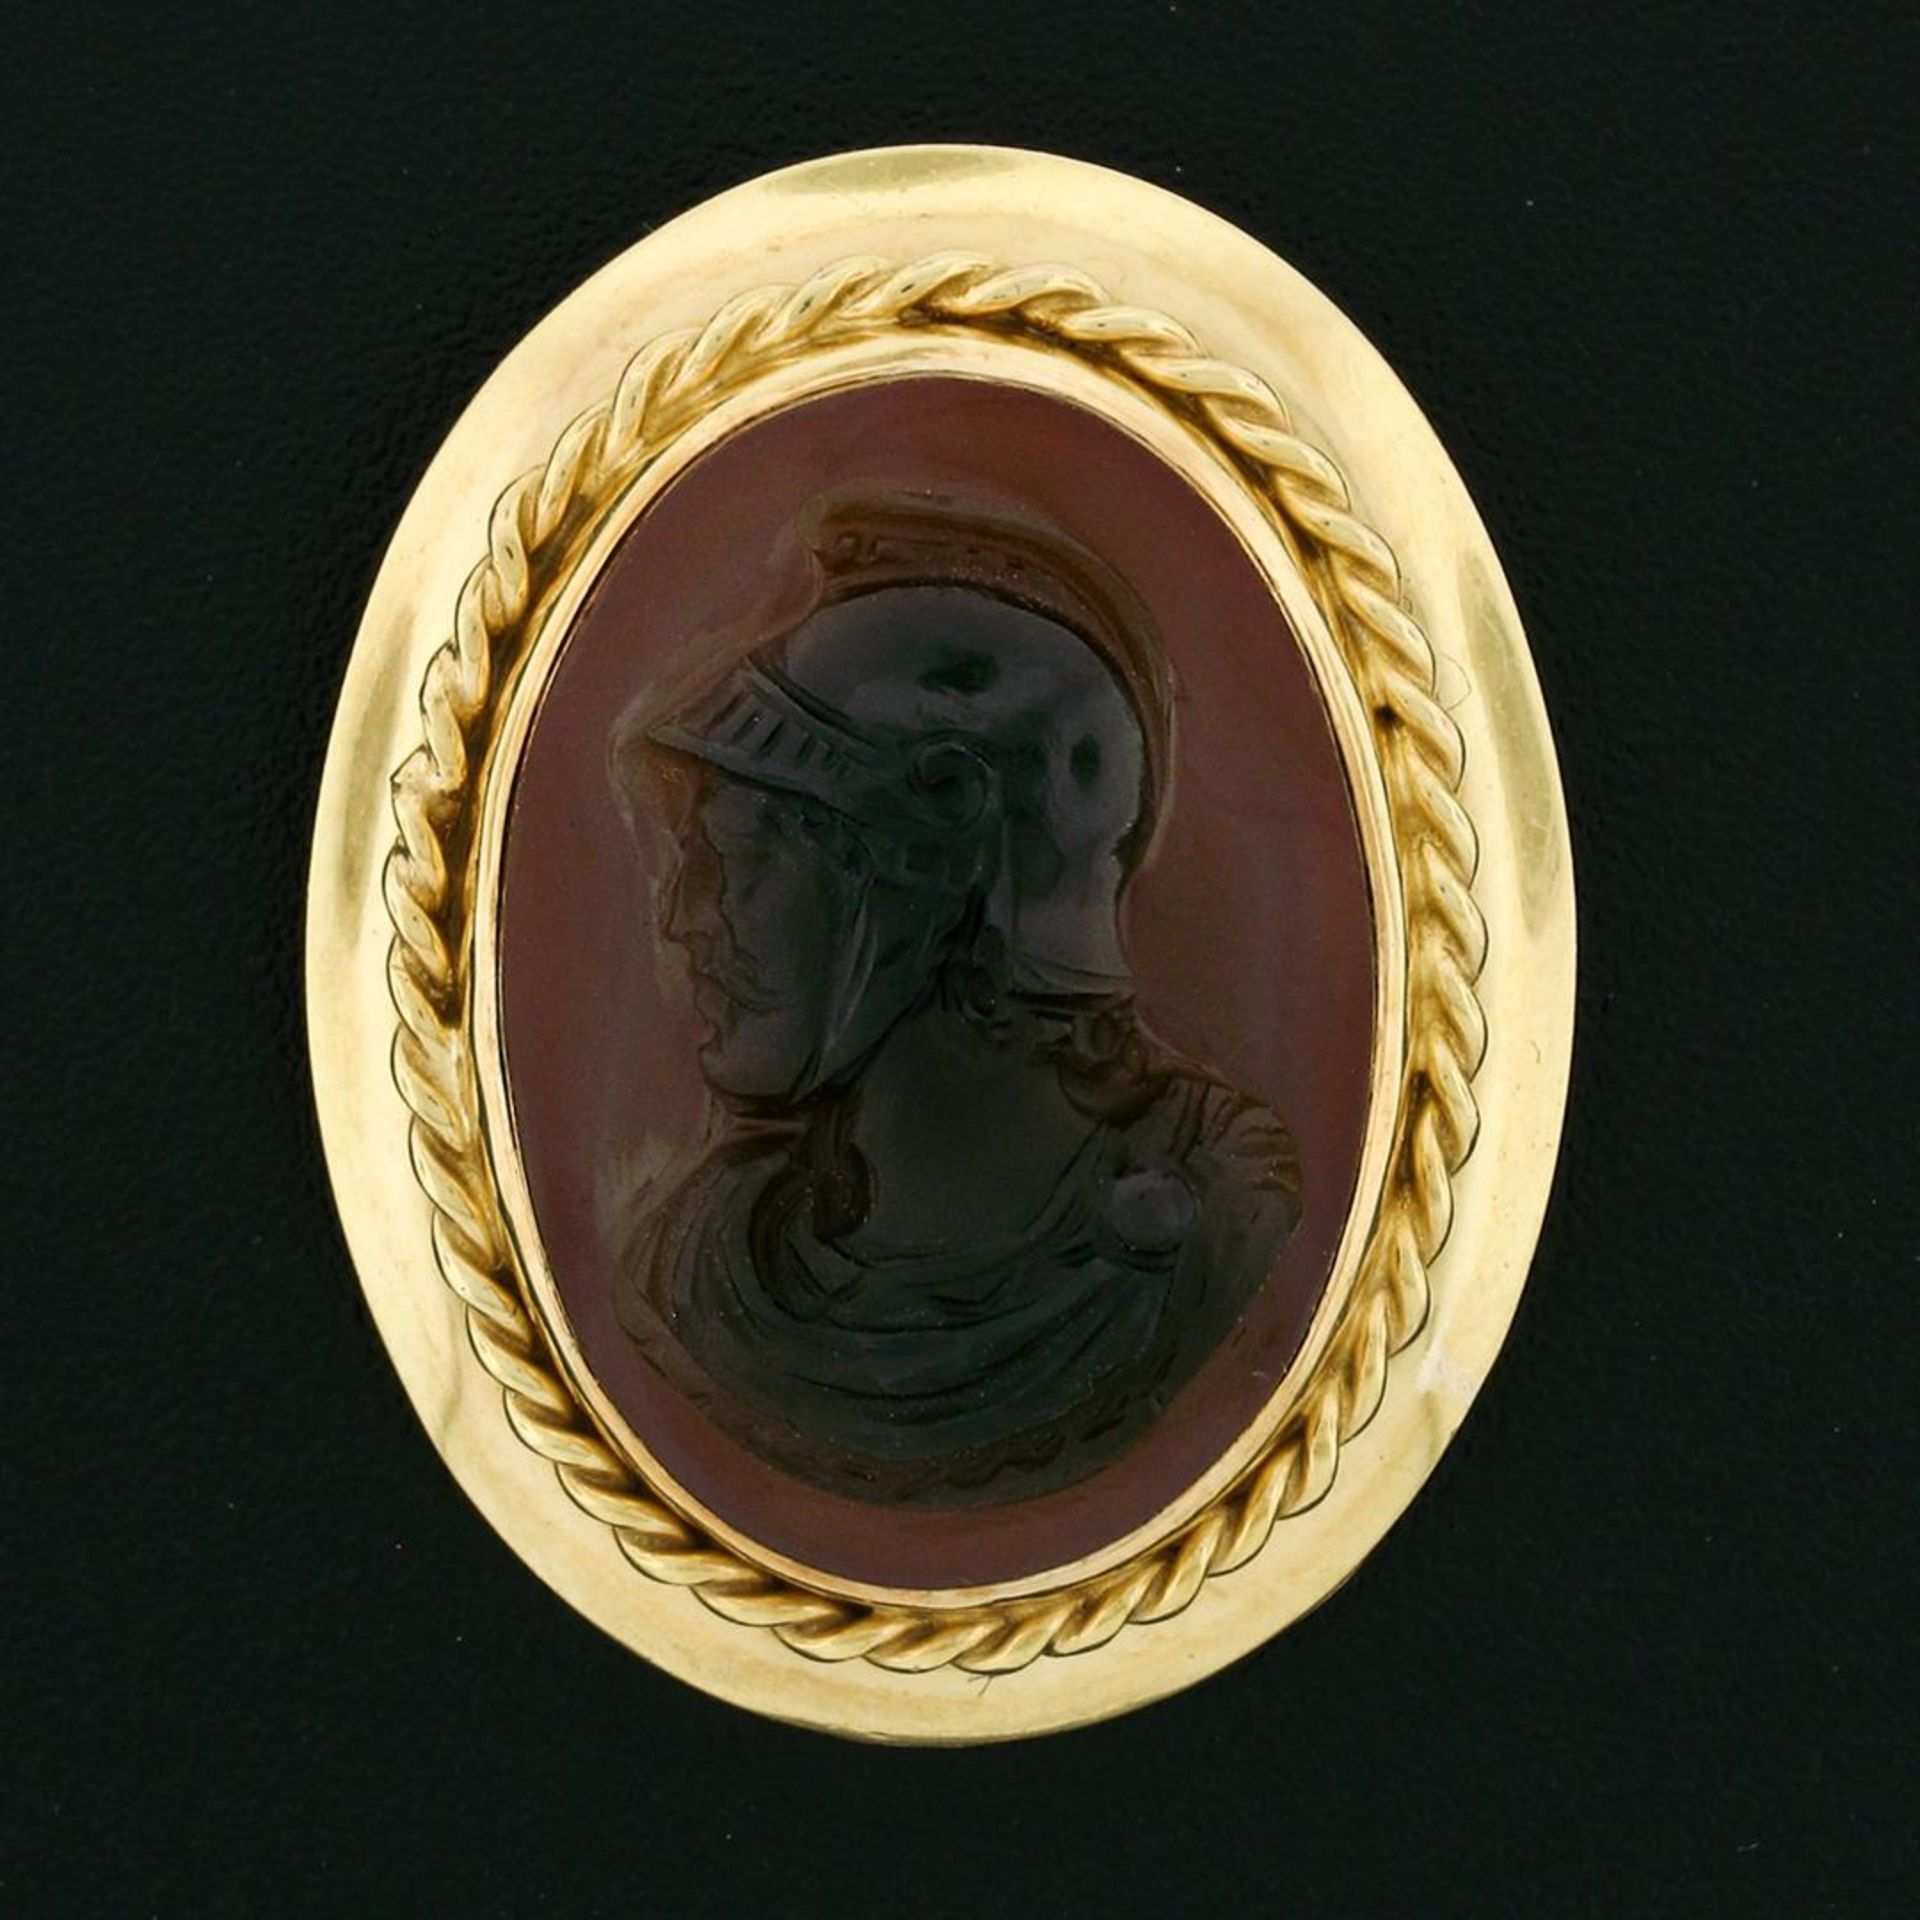 Vintage 14k Gold Carved Brown Agate Trojan Twisted Wire Frame Pin Brooch Pendant - Image 2 of 6